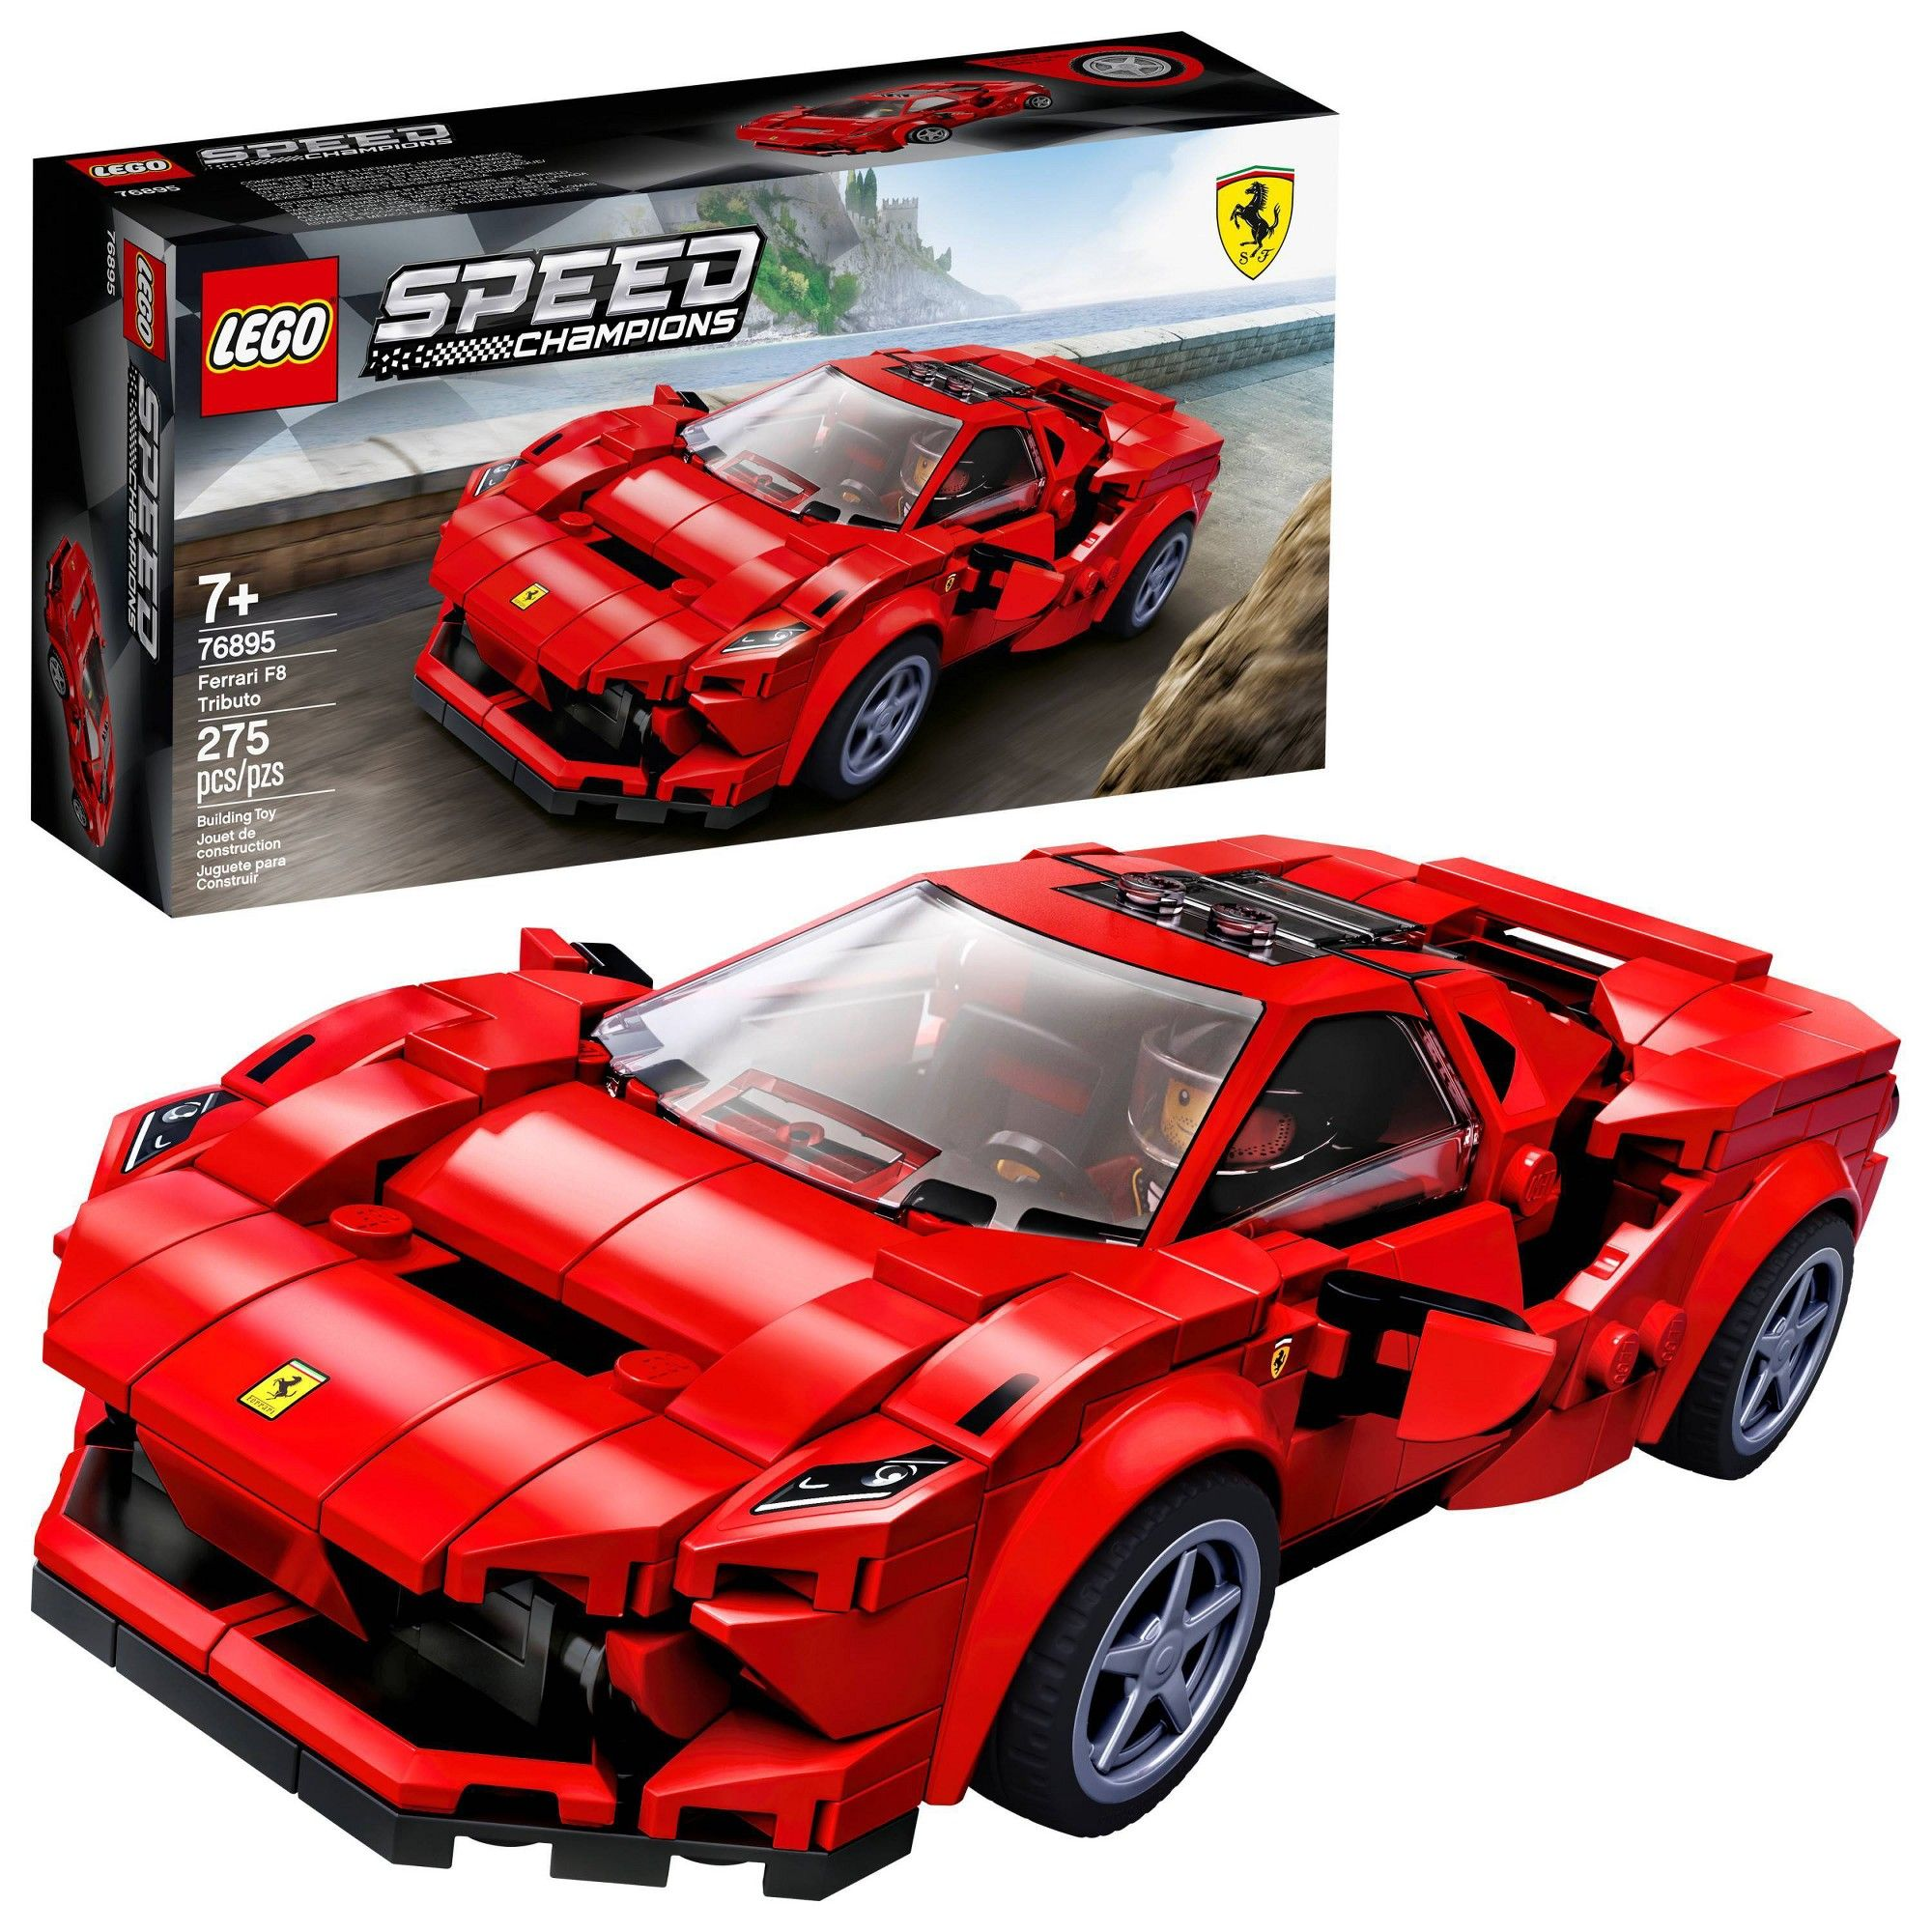 Lego Speed Champions Ferrari F8 Tributo Toy Cars Building Kit 76895 In 2020 Lego Speed Champions Toy Cars For Kids Model Cars Kits